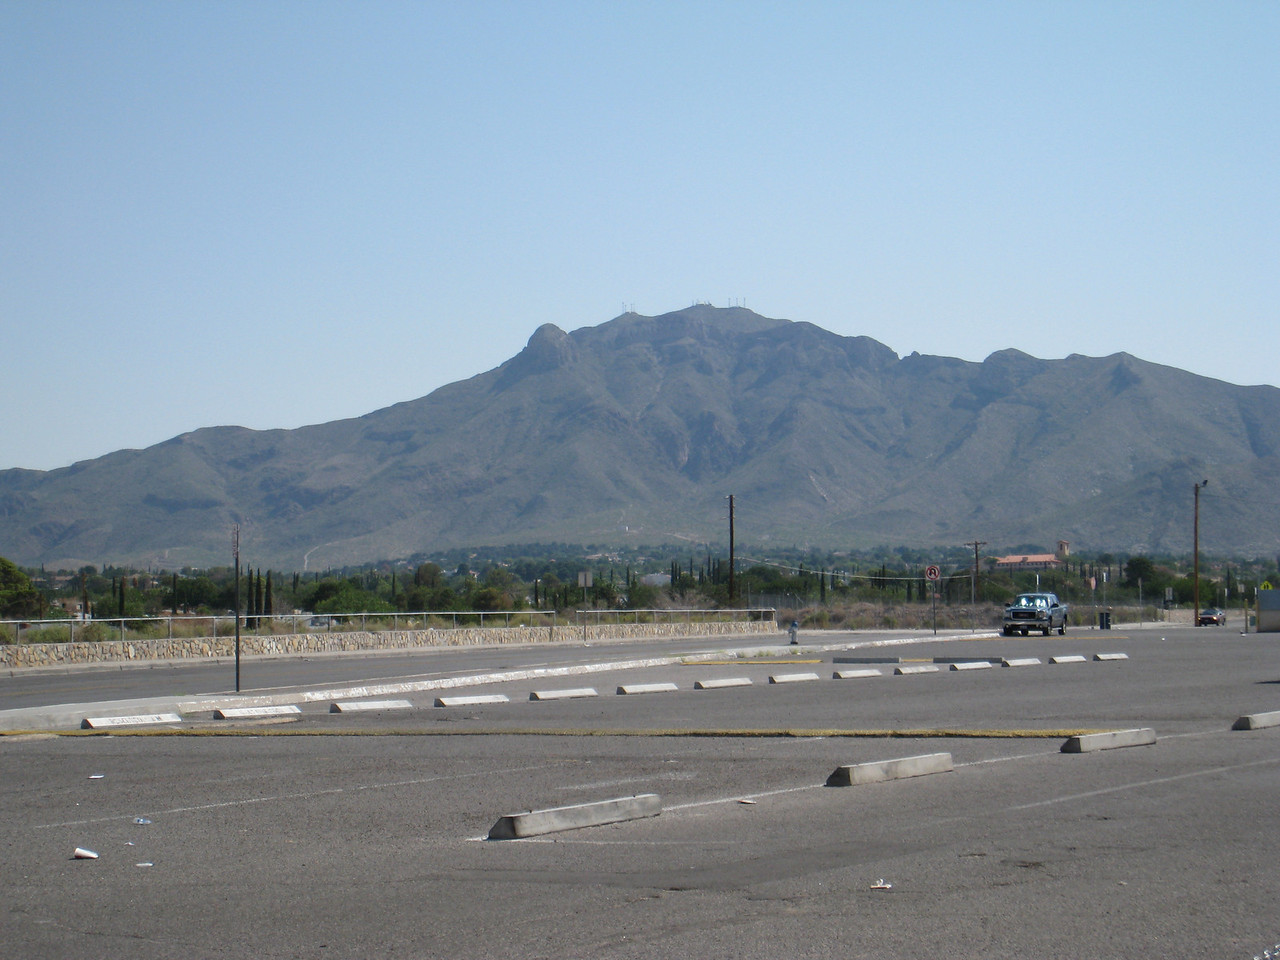 View of the Franklin Mountains from the Coronado parking lot.